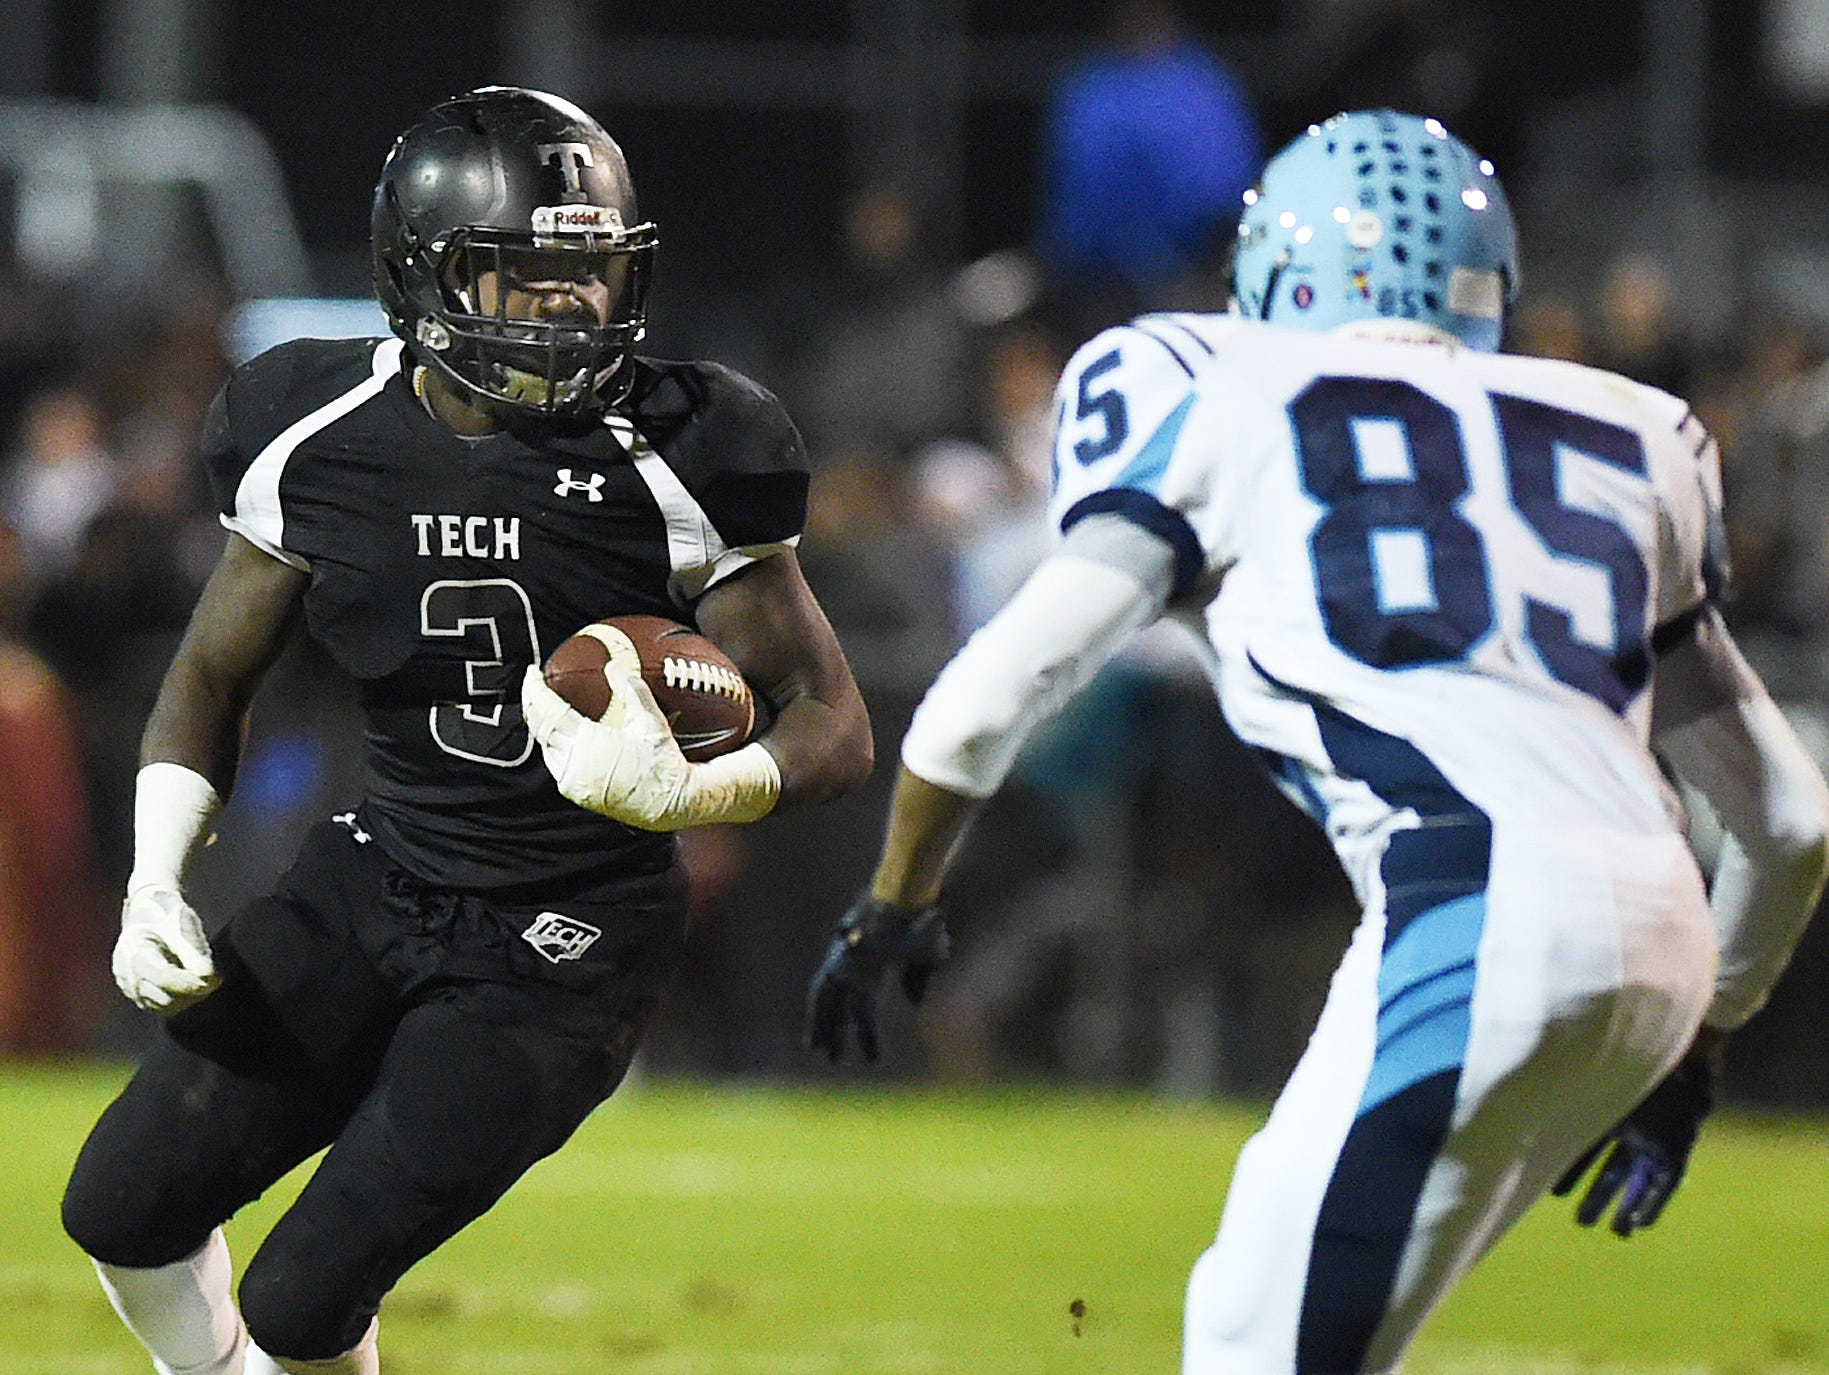 Sussex Techs Patrick Griffin moves the ball as Cape's Deandre Shepard defends. Griffin had four rushing touchdowns in Tech's win over Cape in Georgetown on Friday.